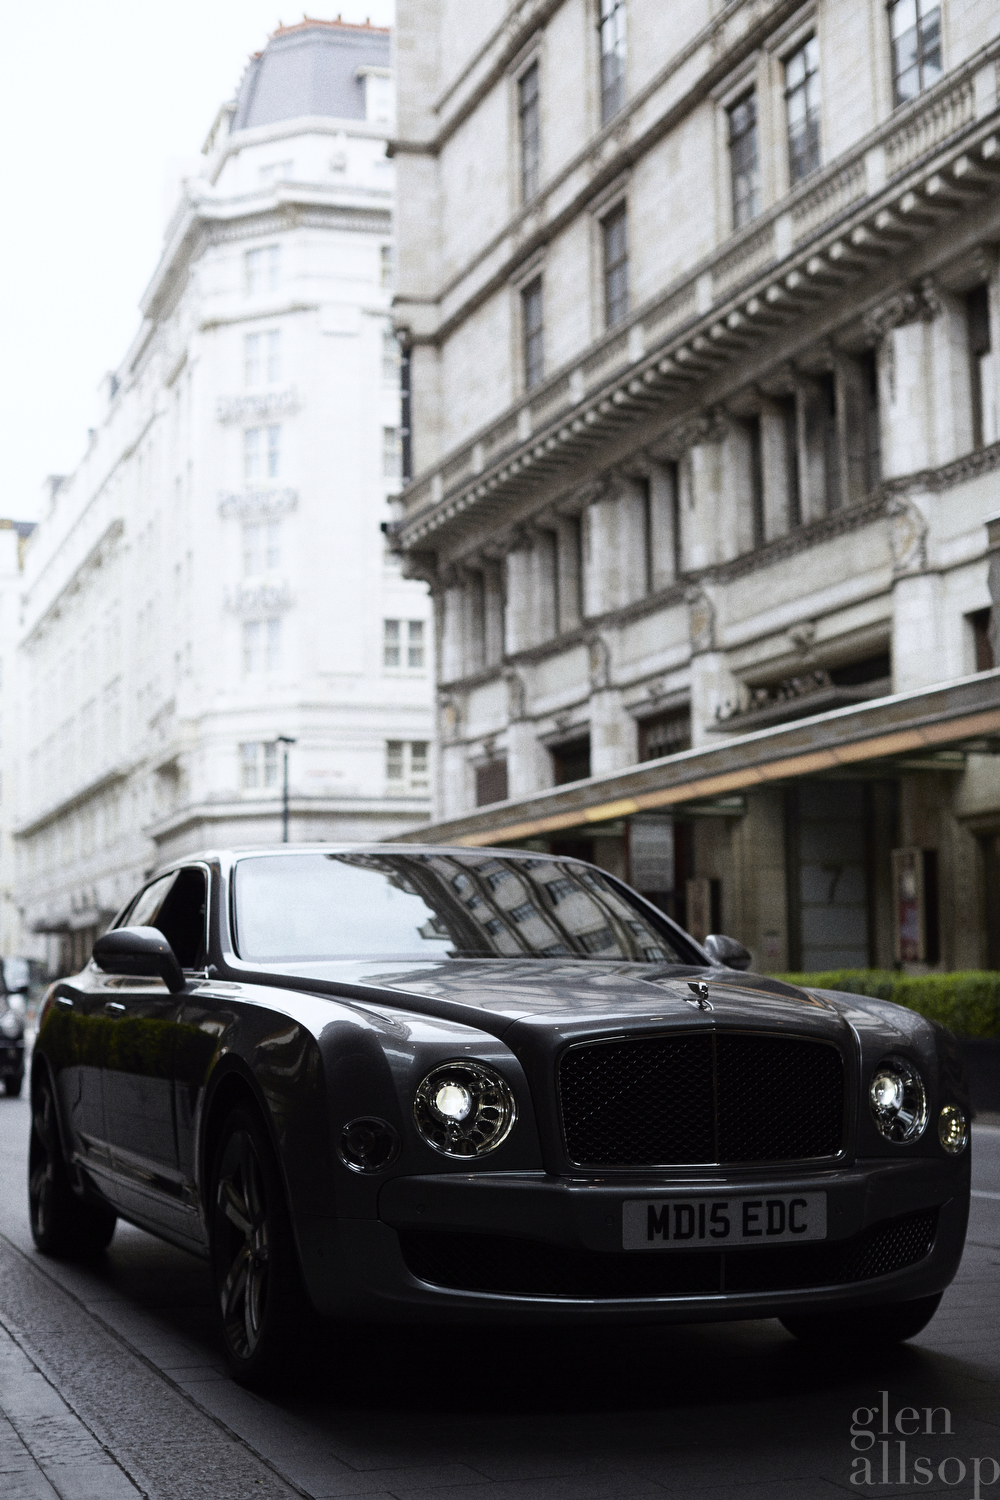 bentley-mulsanne-cars of london